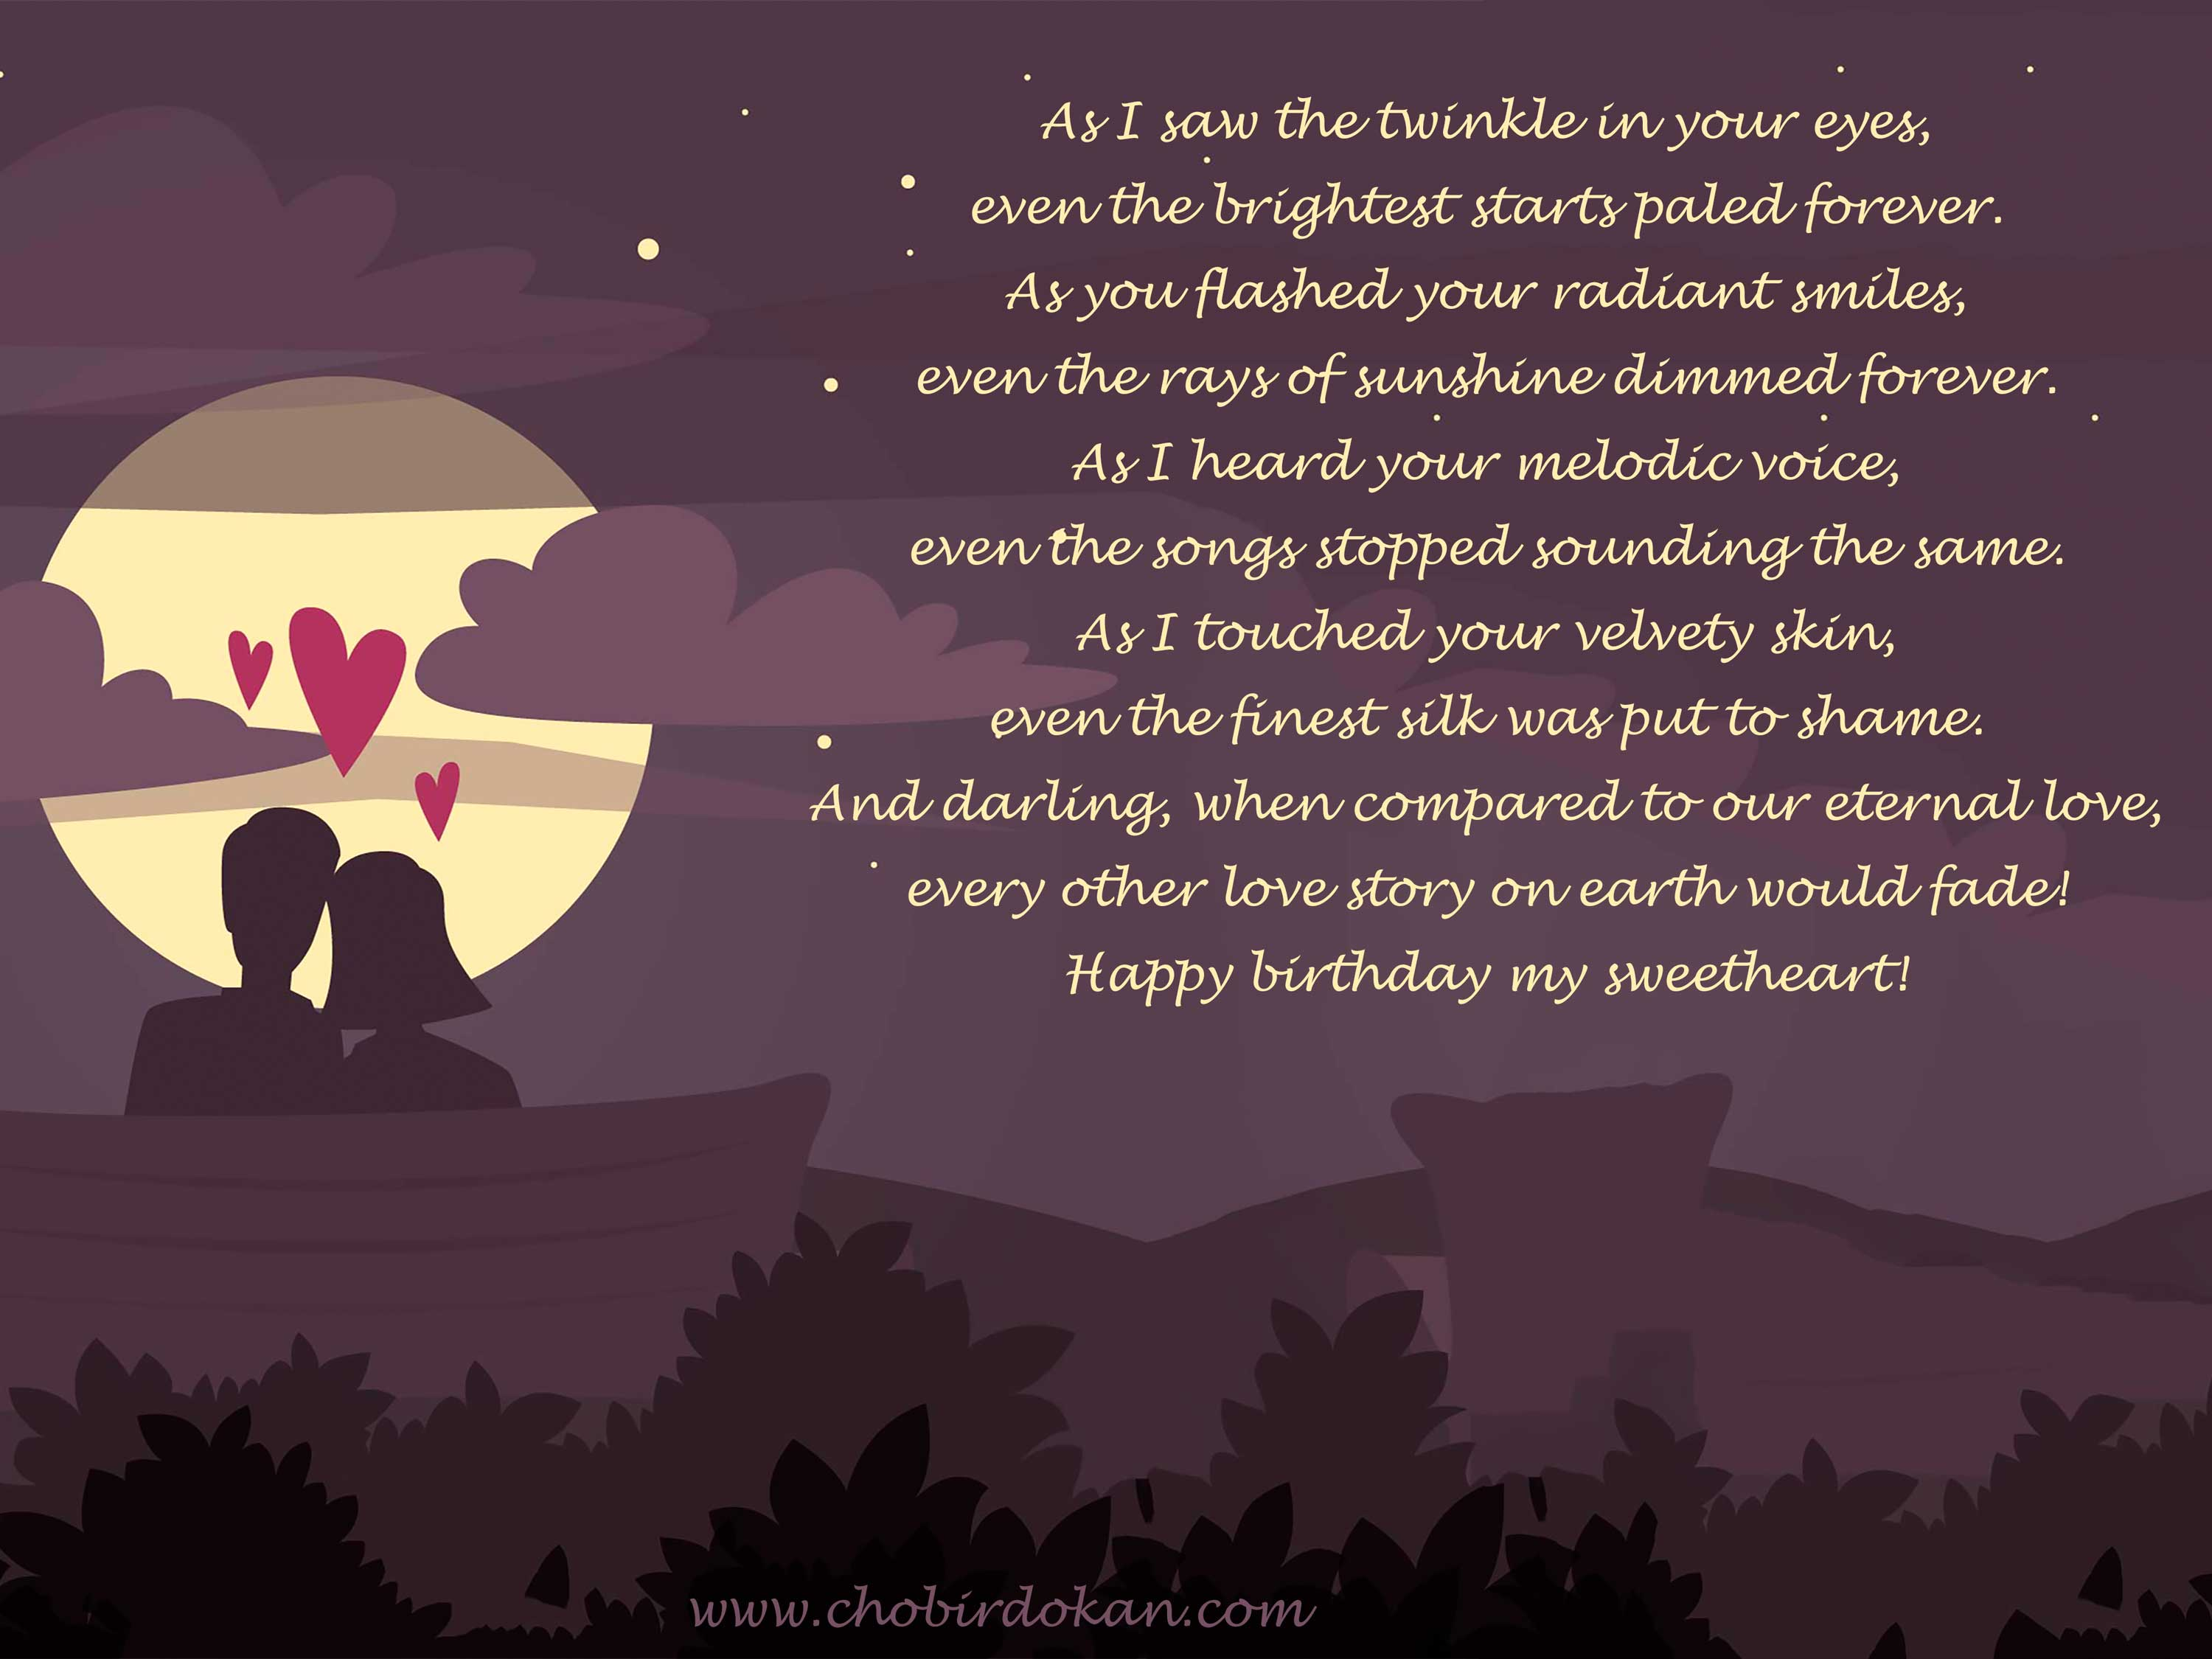 Happy Birthday Love Quotes For Her Romantic Happy Birthday Poems For Her For Girlfriend Or Wife